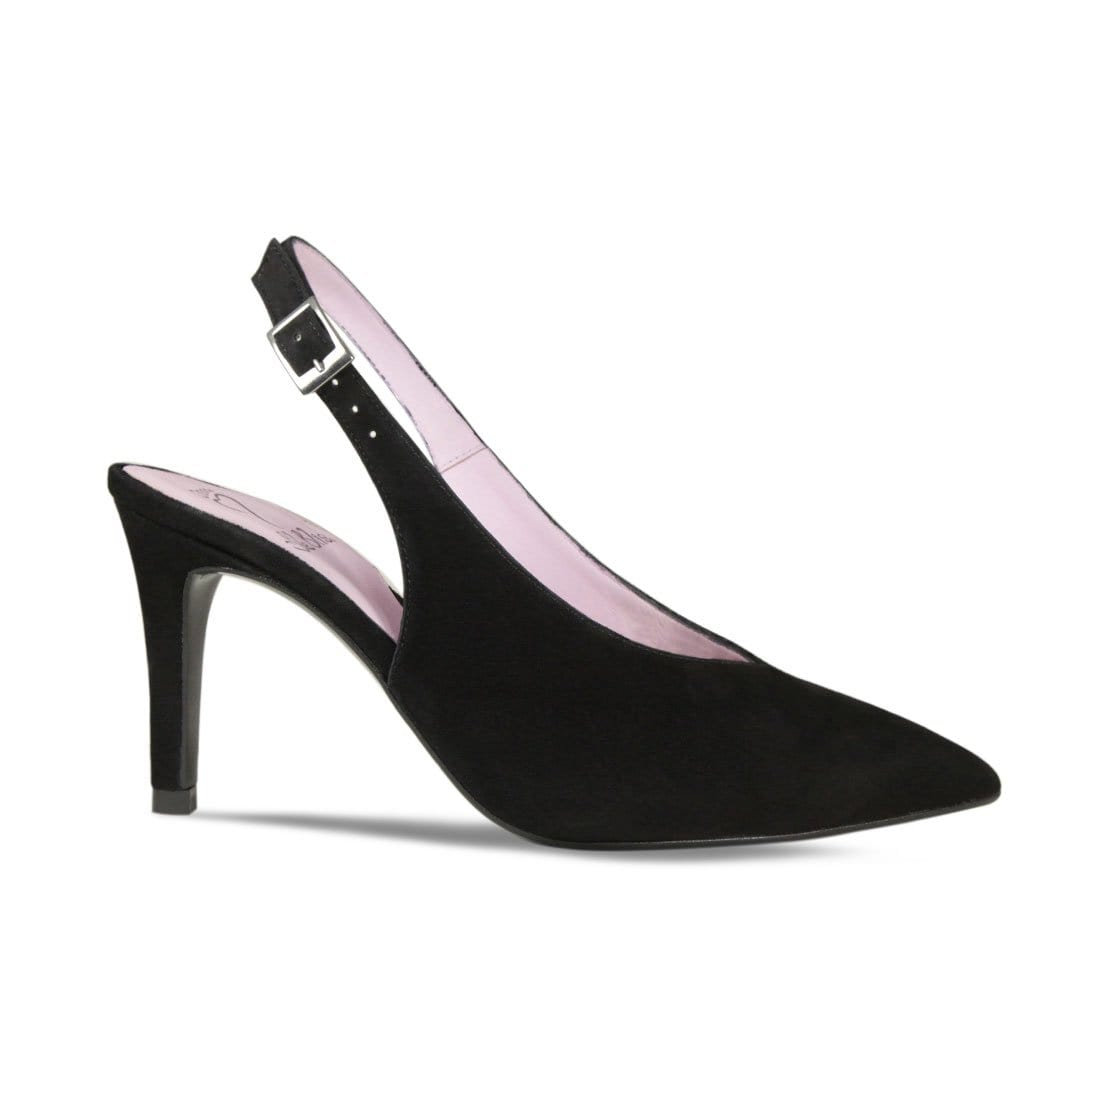 Black Suede Slim-Heel Sling-Back Pump